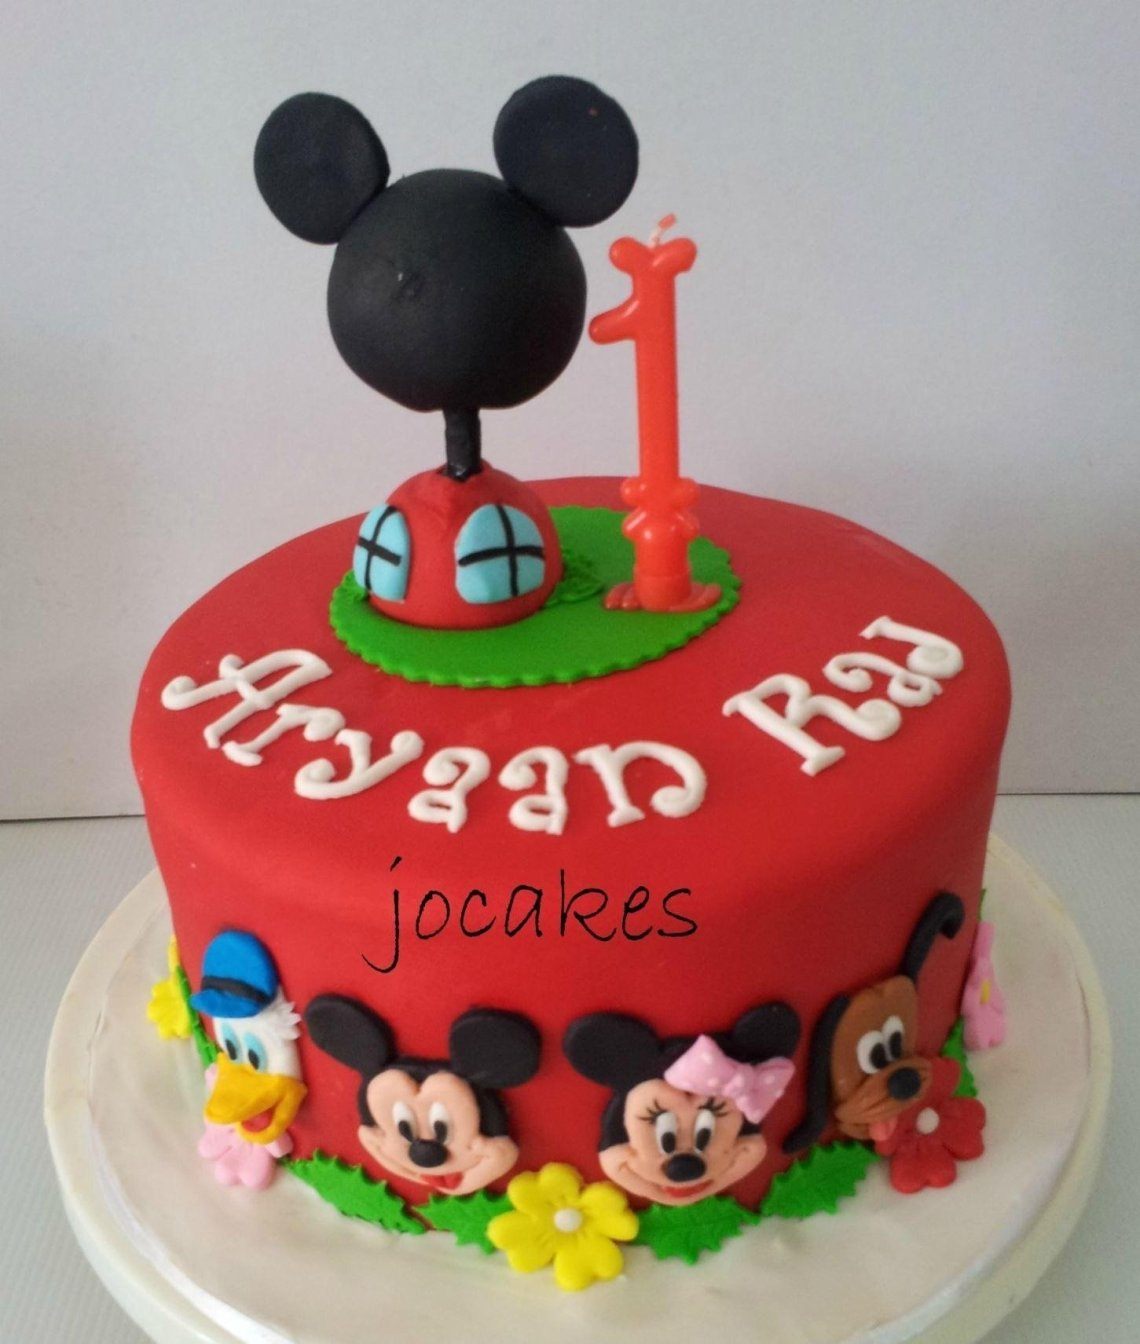 Superb Birthday Cake Ideas For 4 Year Old Boy The Cake Boutique Personalised Birthday Cards Veneteletsinfo